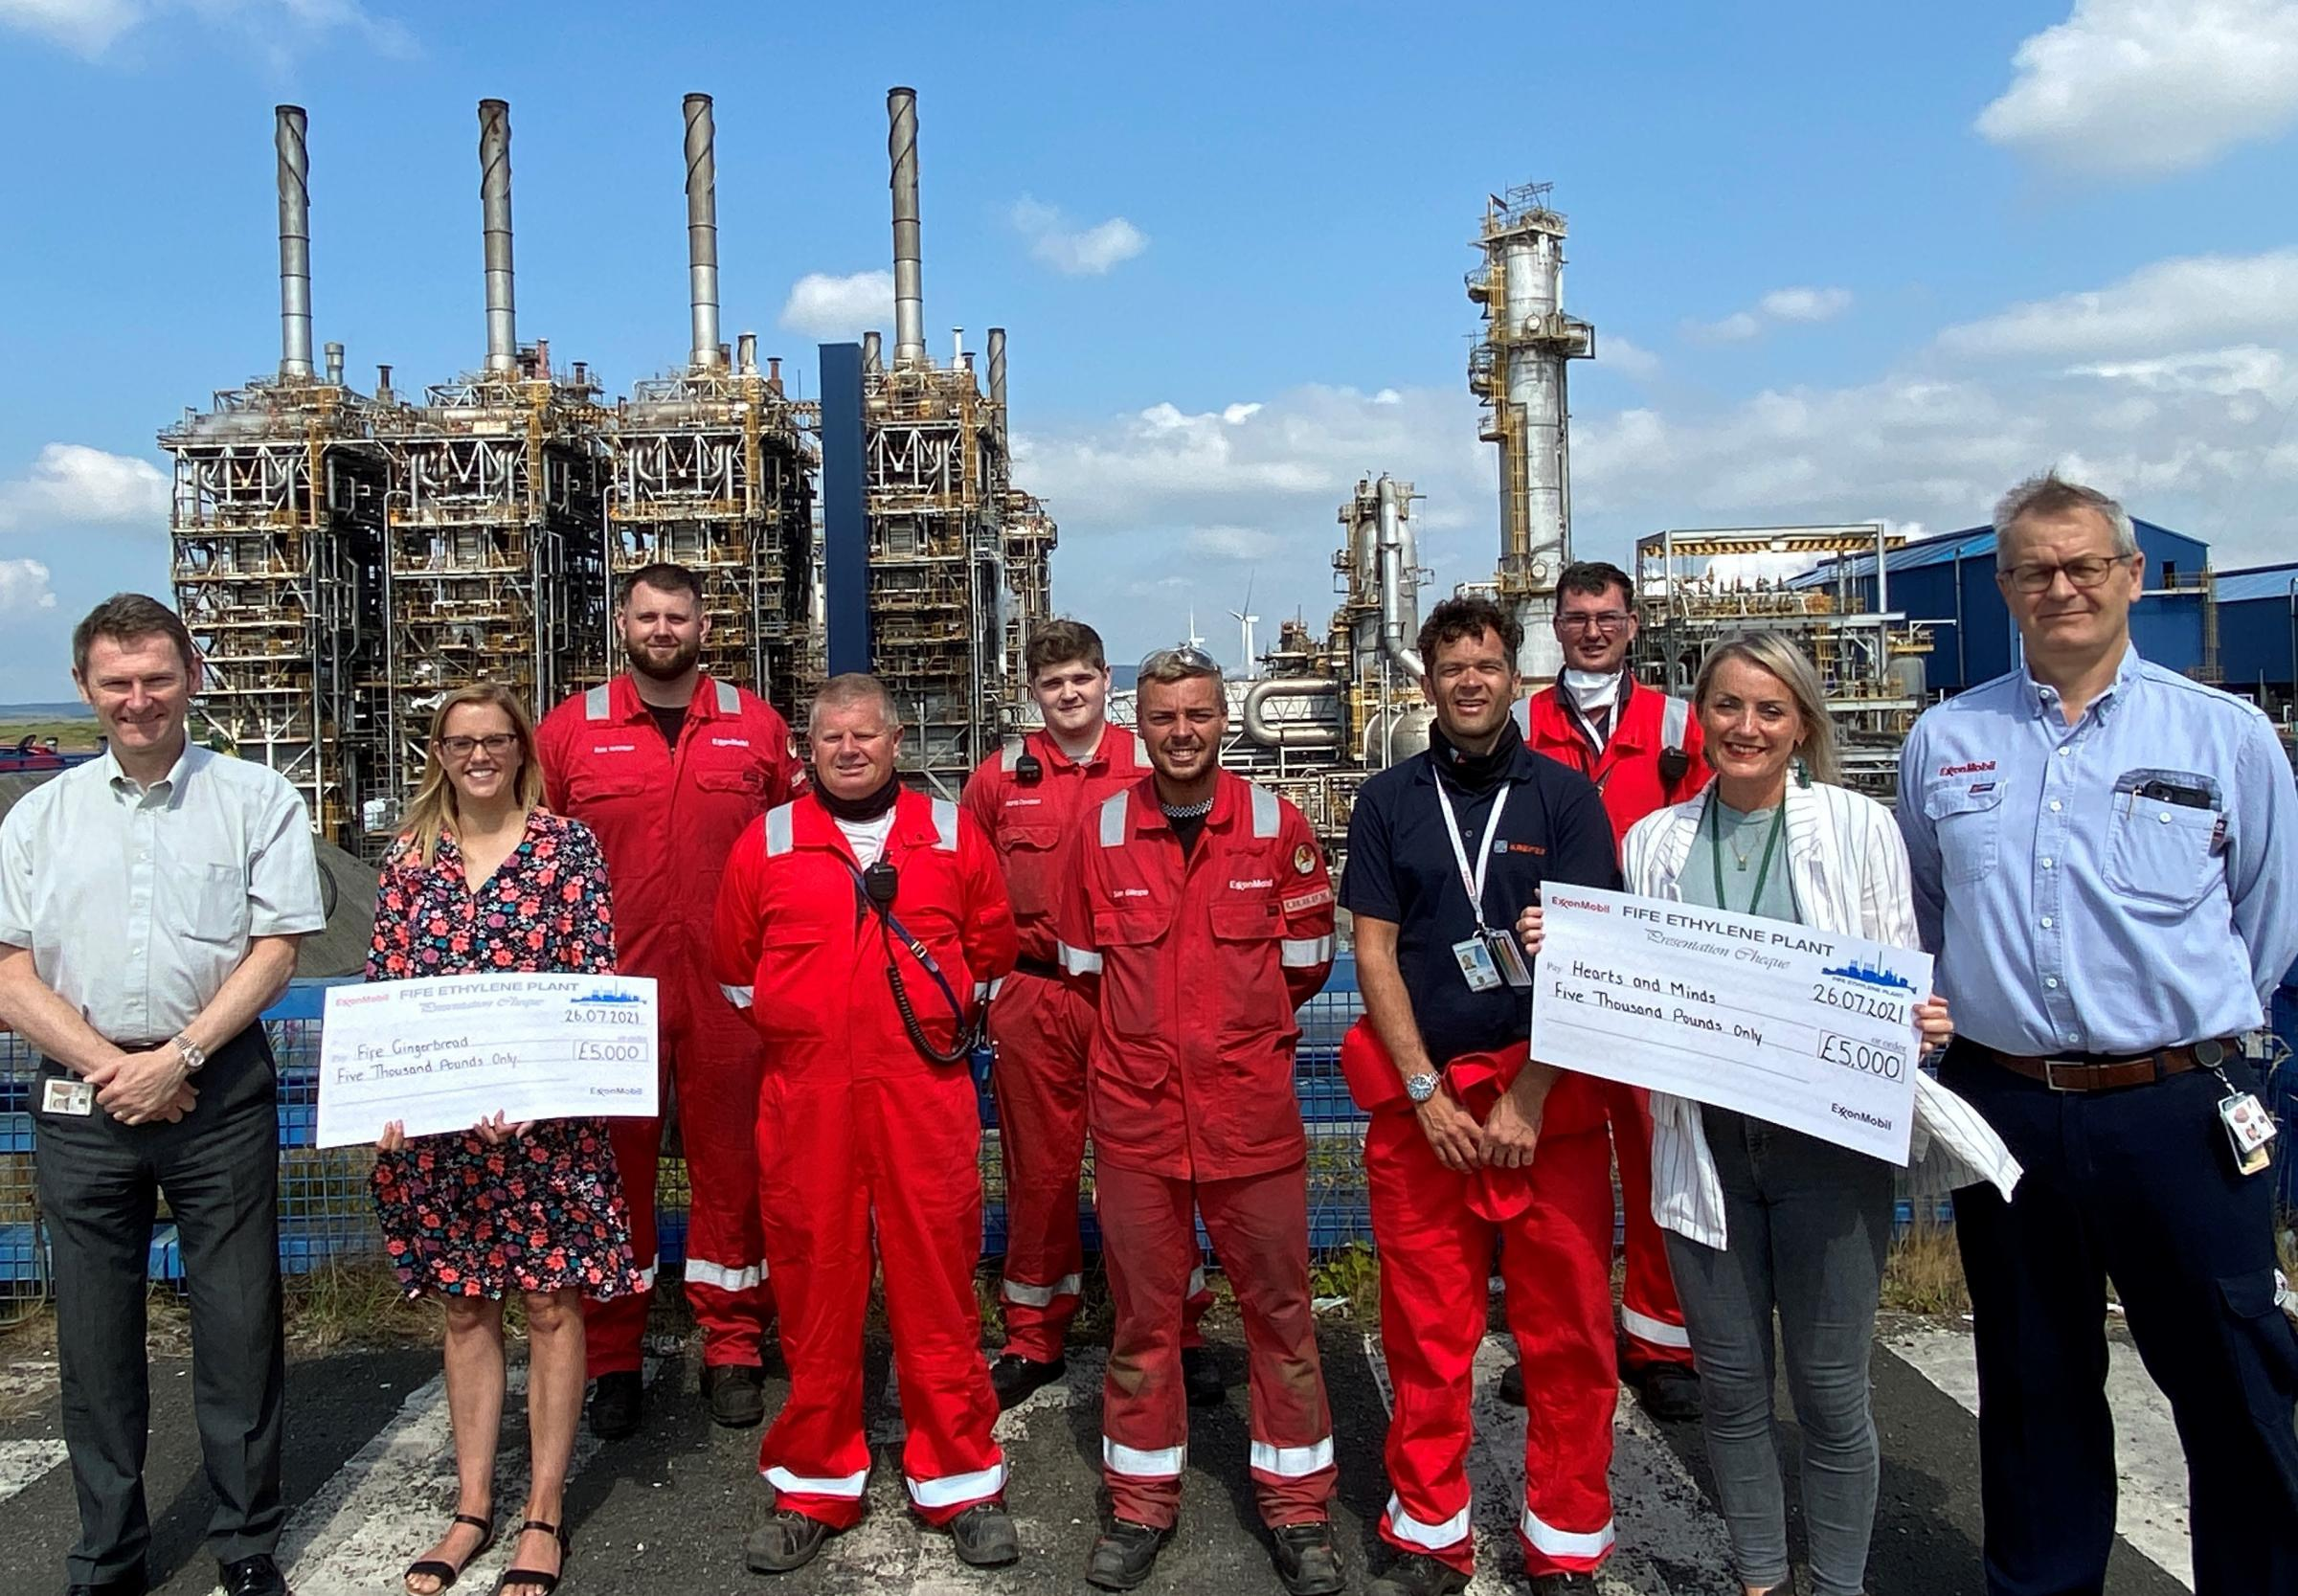 Mossmorran: Thousands of pounds raised for charity by plant staff